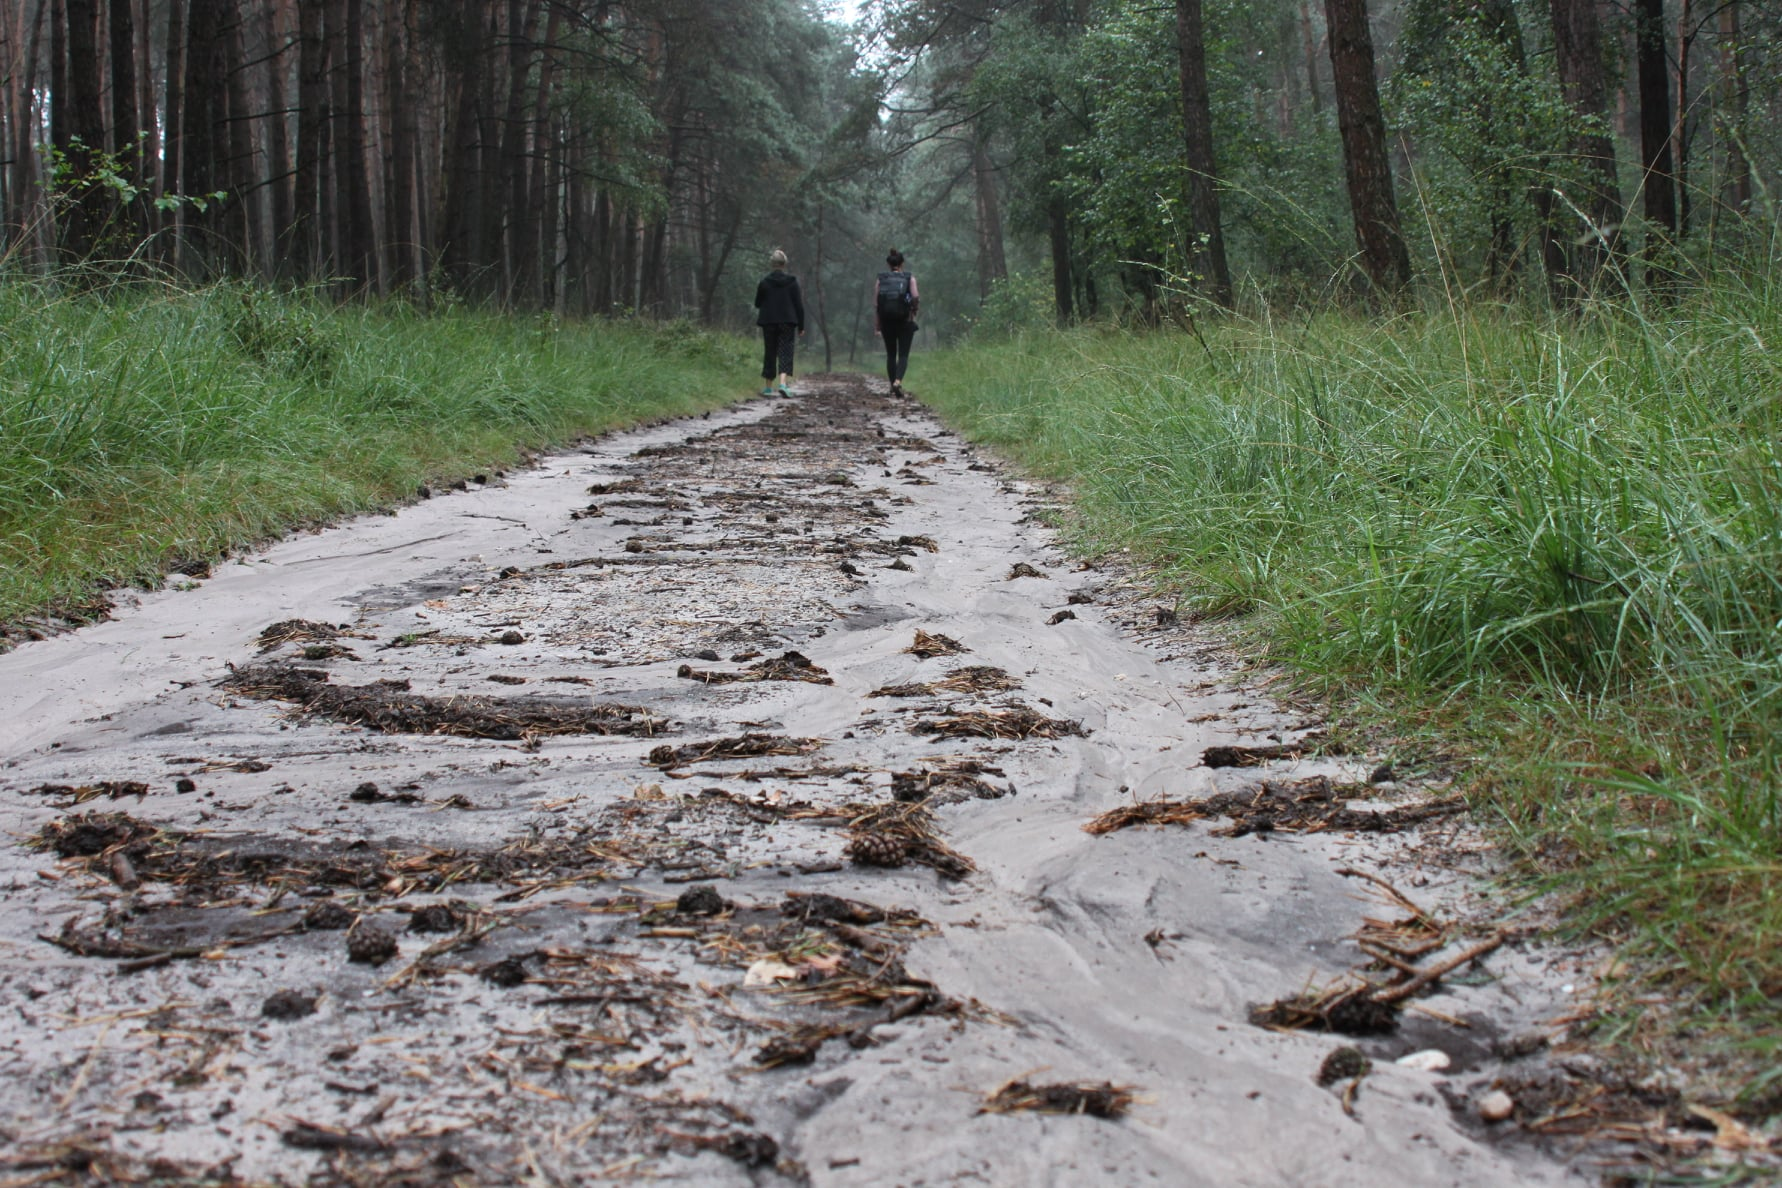 Fotoworkshop Veluwe - ROCKY ROADS TRAVEL